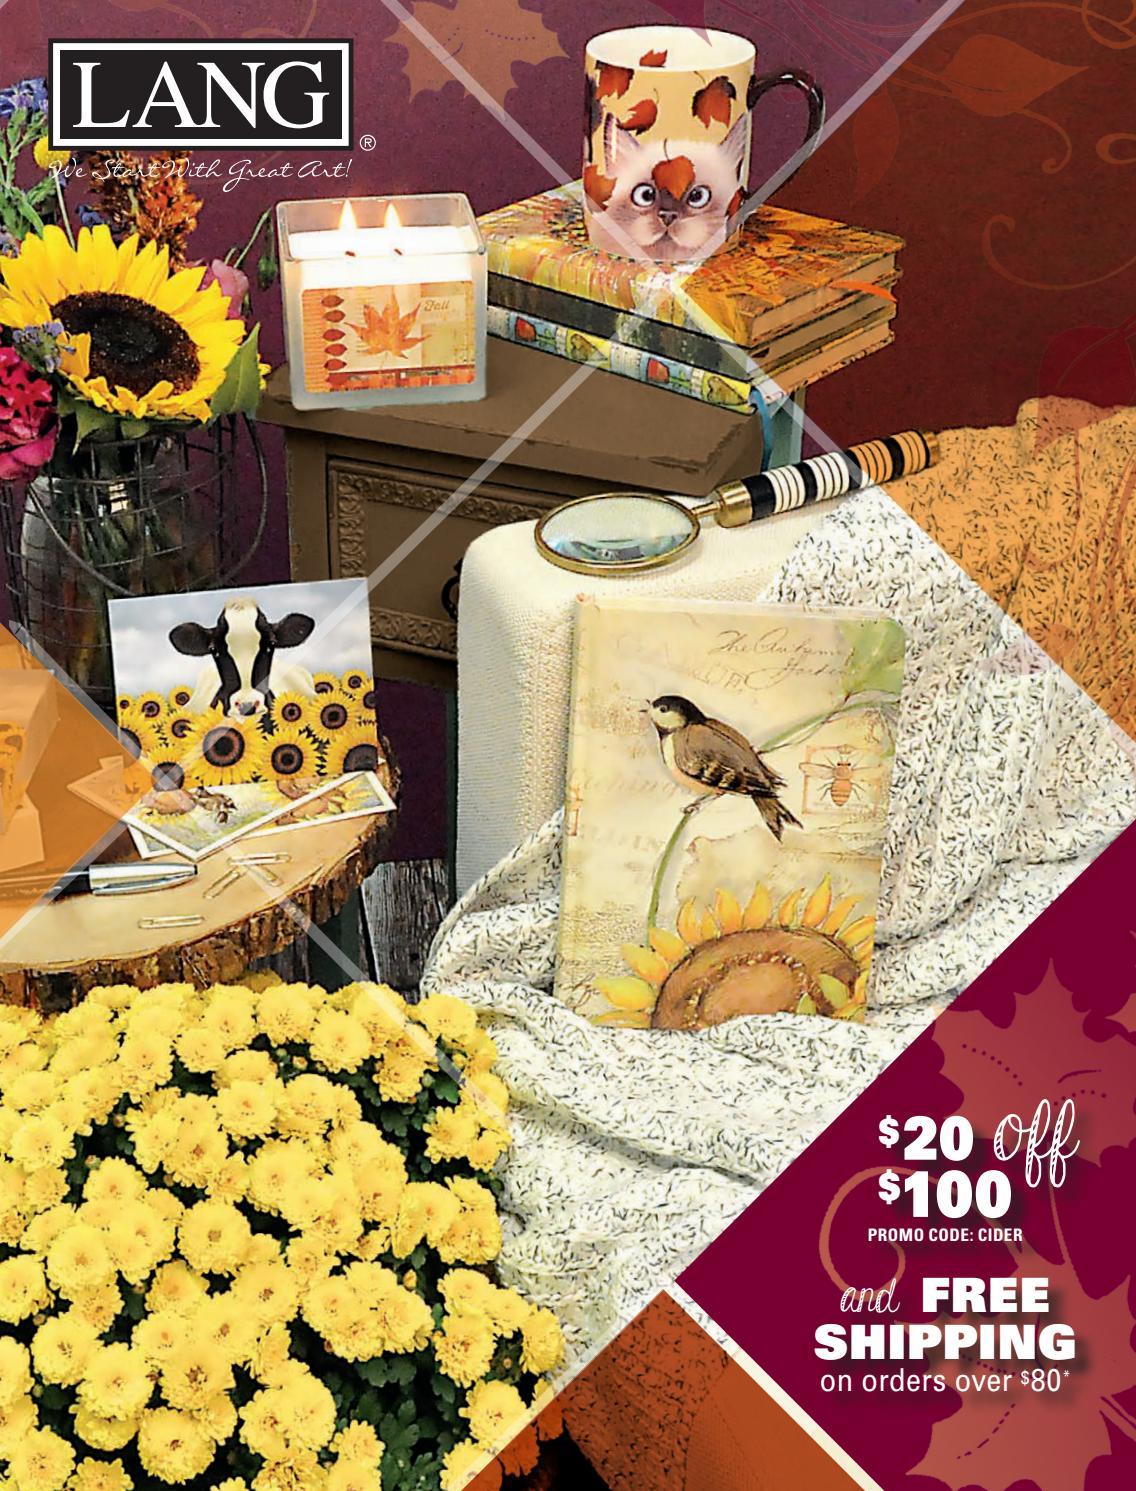 30 x 18 Lang 3210049 Surrounded by Sunflowers Door Mat by Lowell Herrero